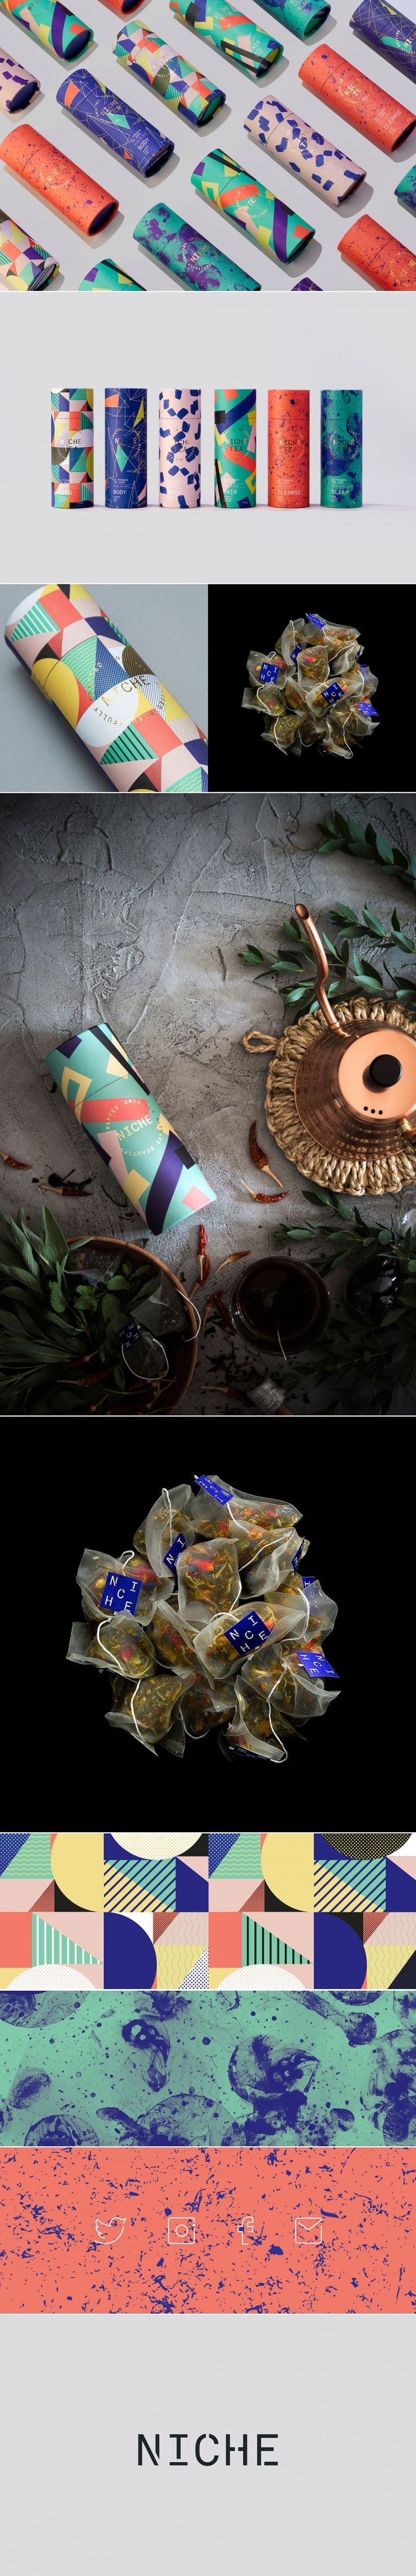 Niche is Definitely Not Your Grandmother's Tea — The Dieline   Packaging & Branding Design & Innovation News